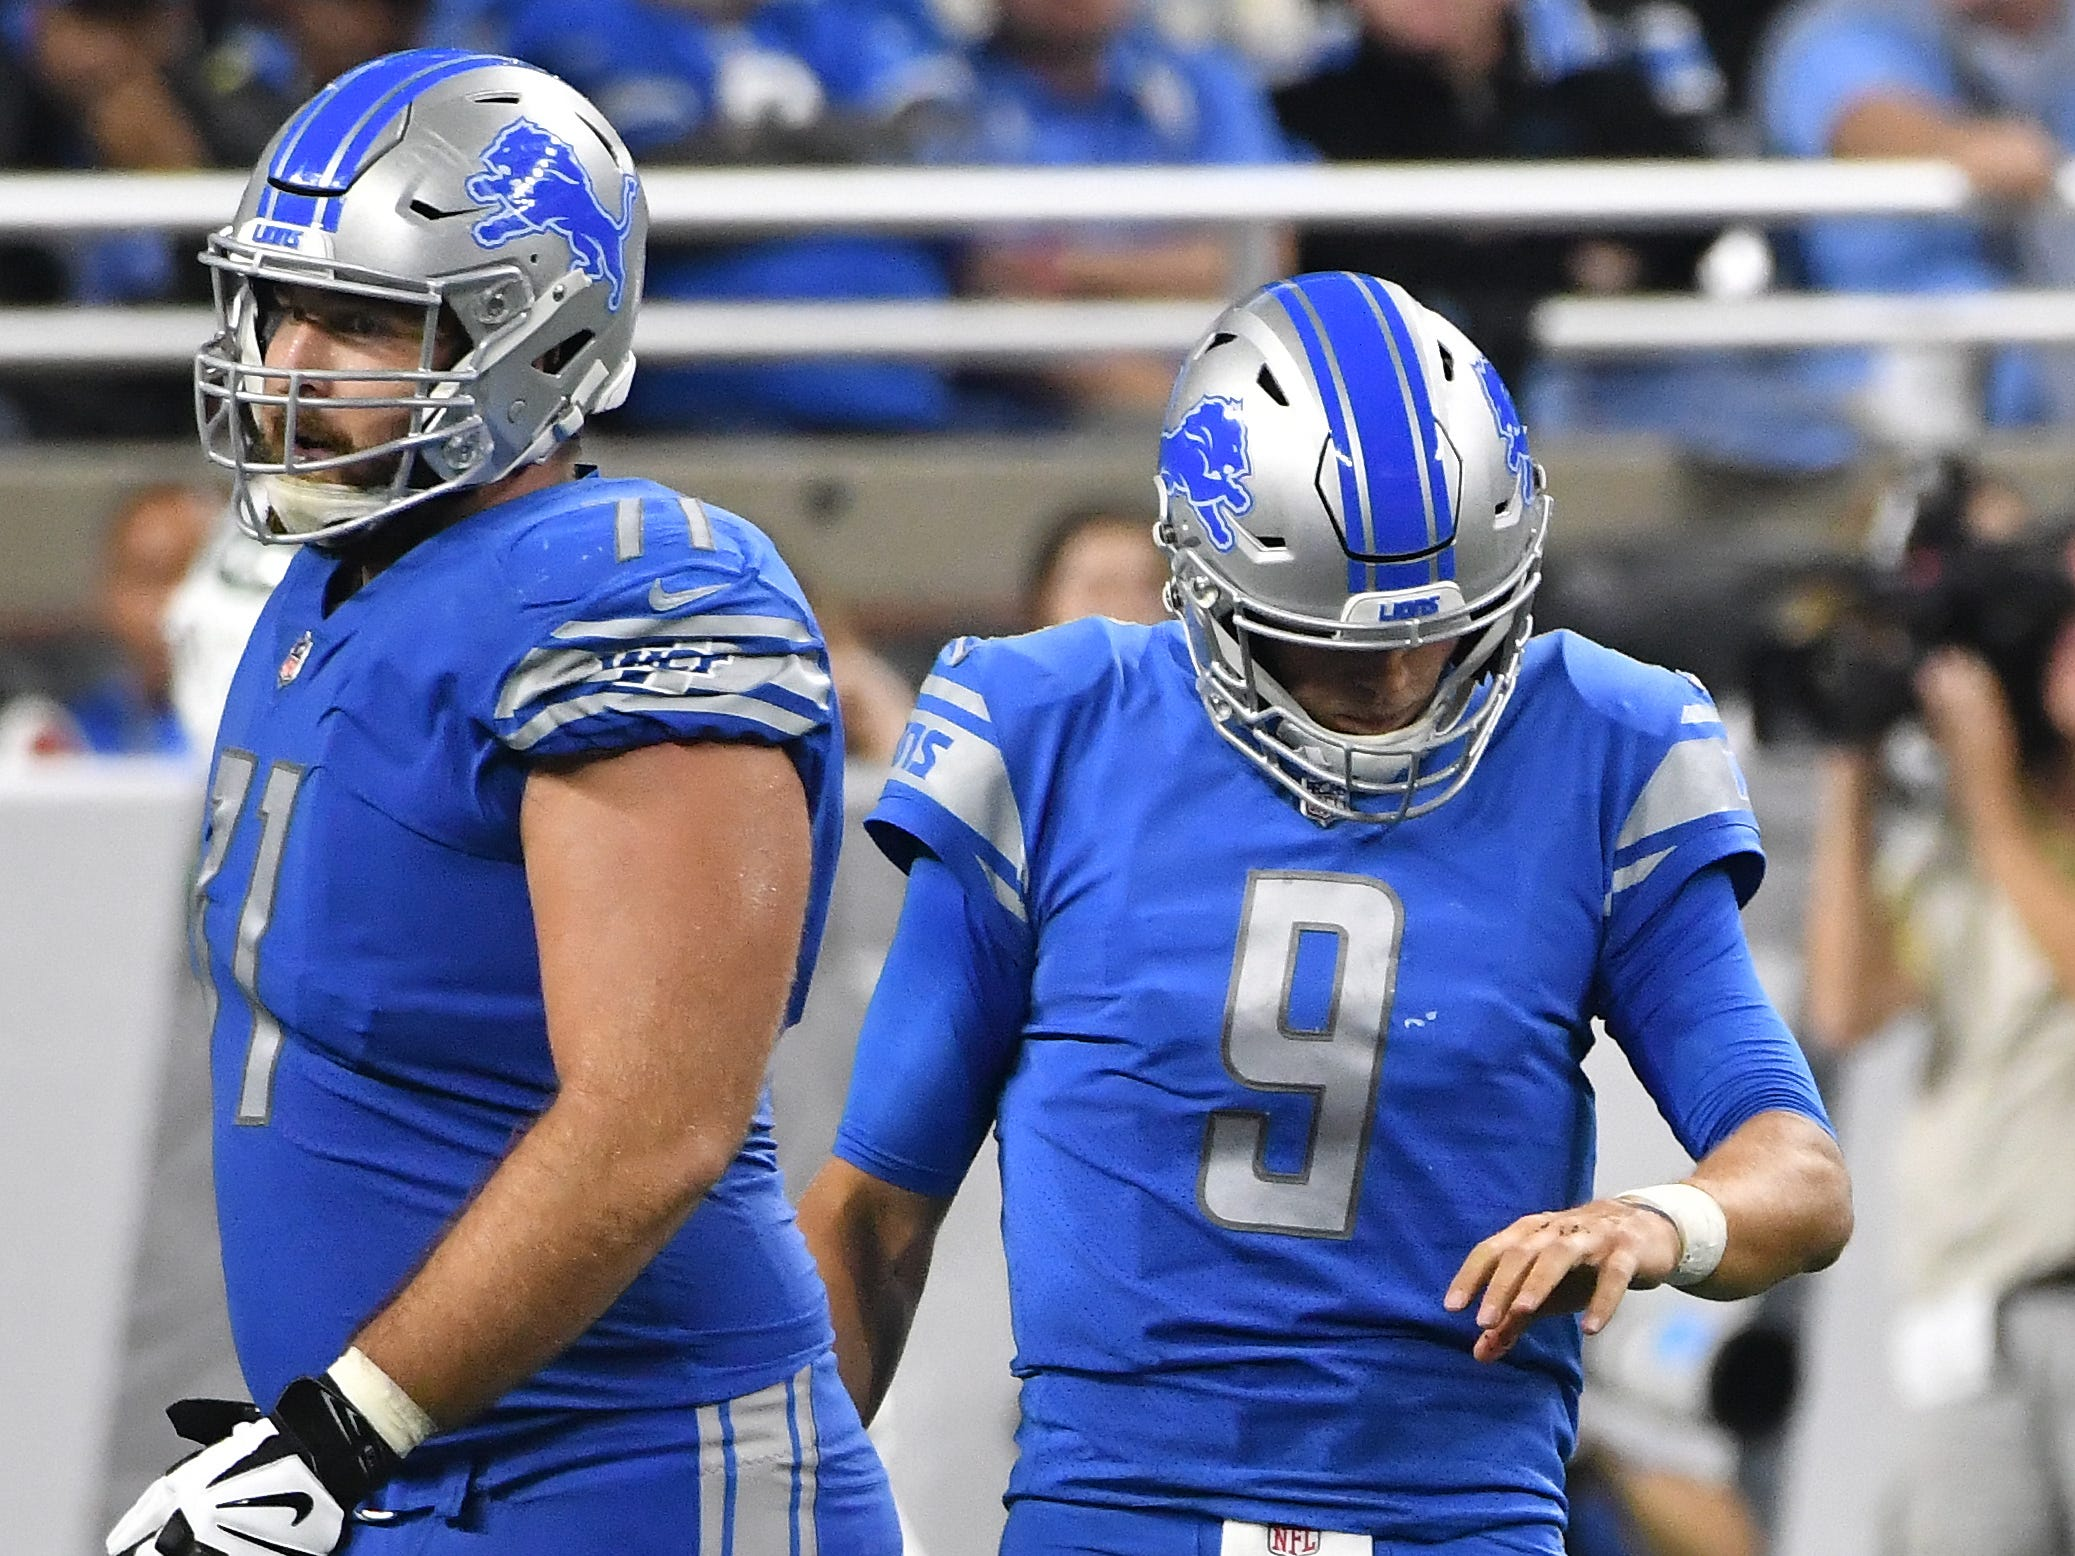 Lions' Matthew Stafford, with offensive lineman Rick Wagner, looks down at his hand after throwing an interception to Jets' Darron Lee in the third quarter.